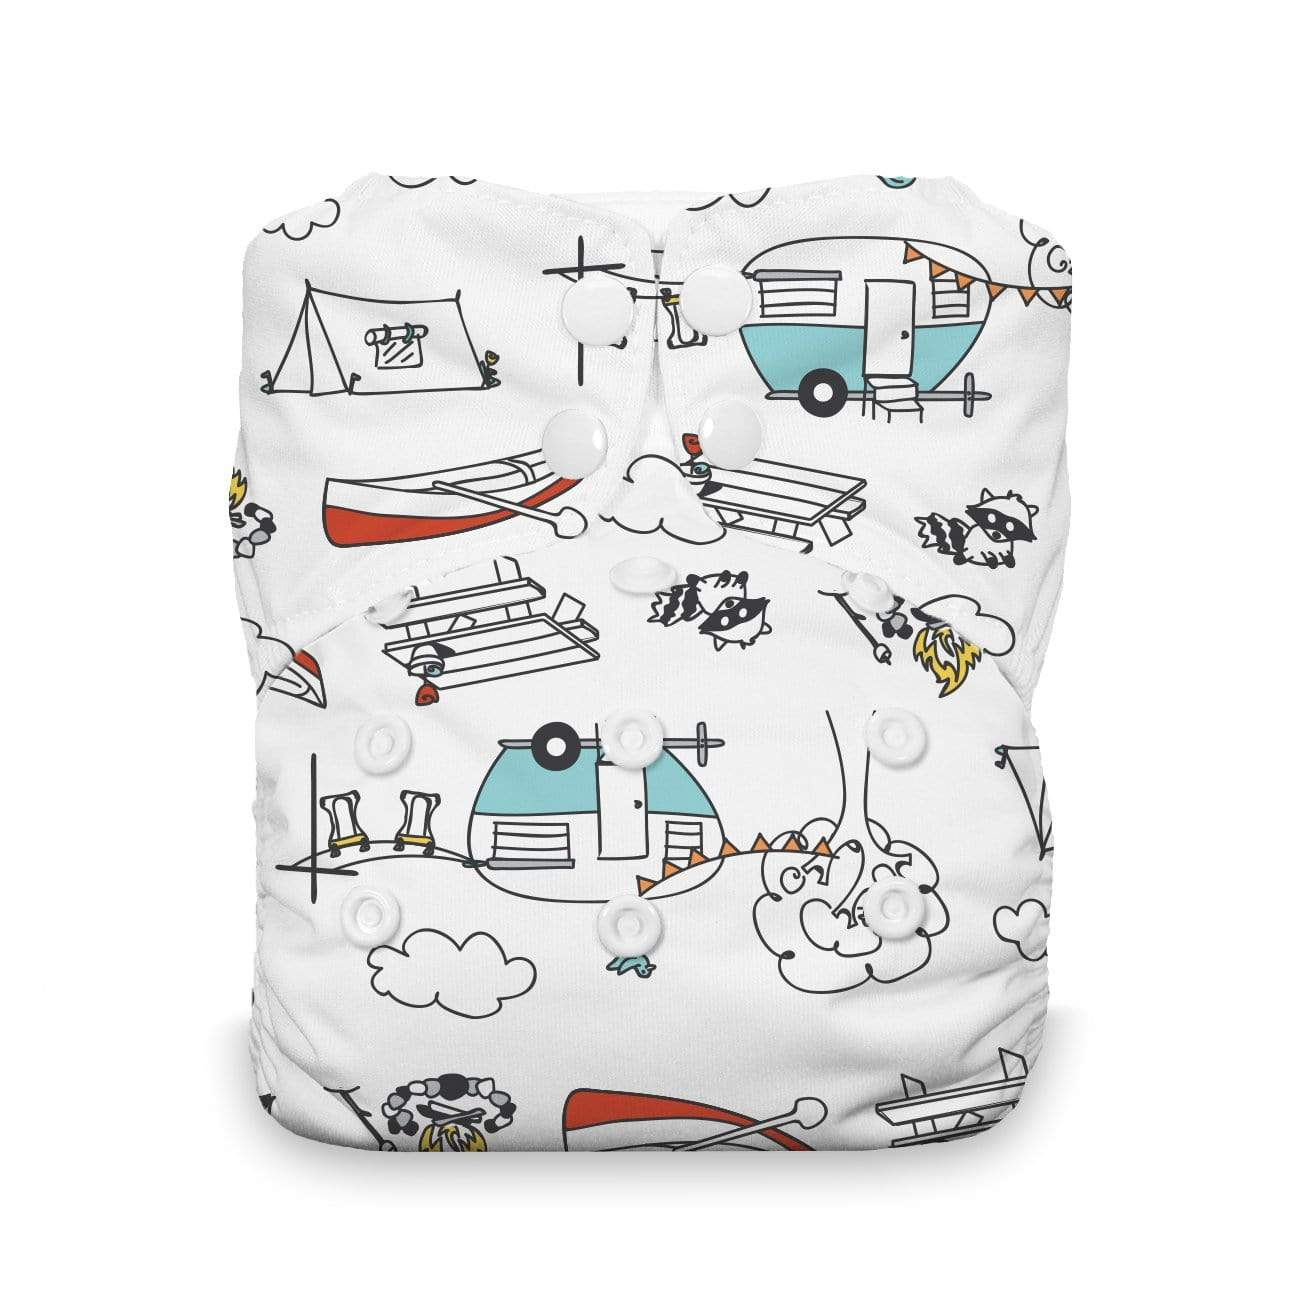 Thirsties One Size Natural Stay Dry Snap All In One - Happy Camper